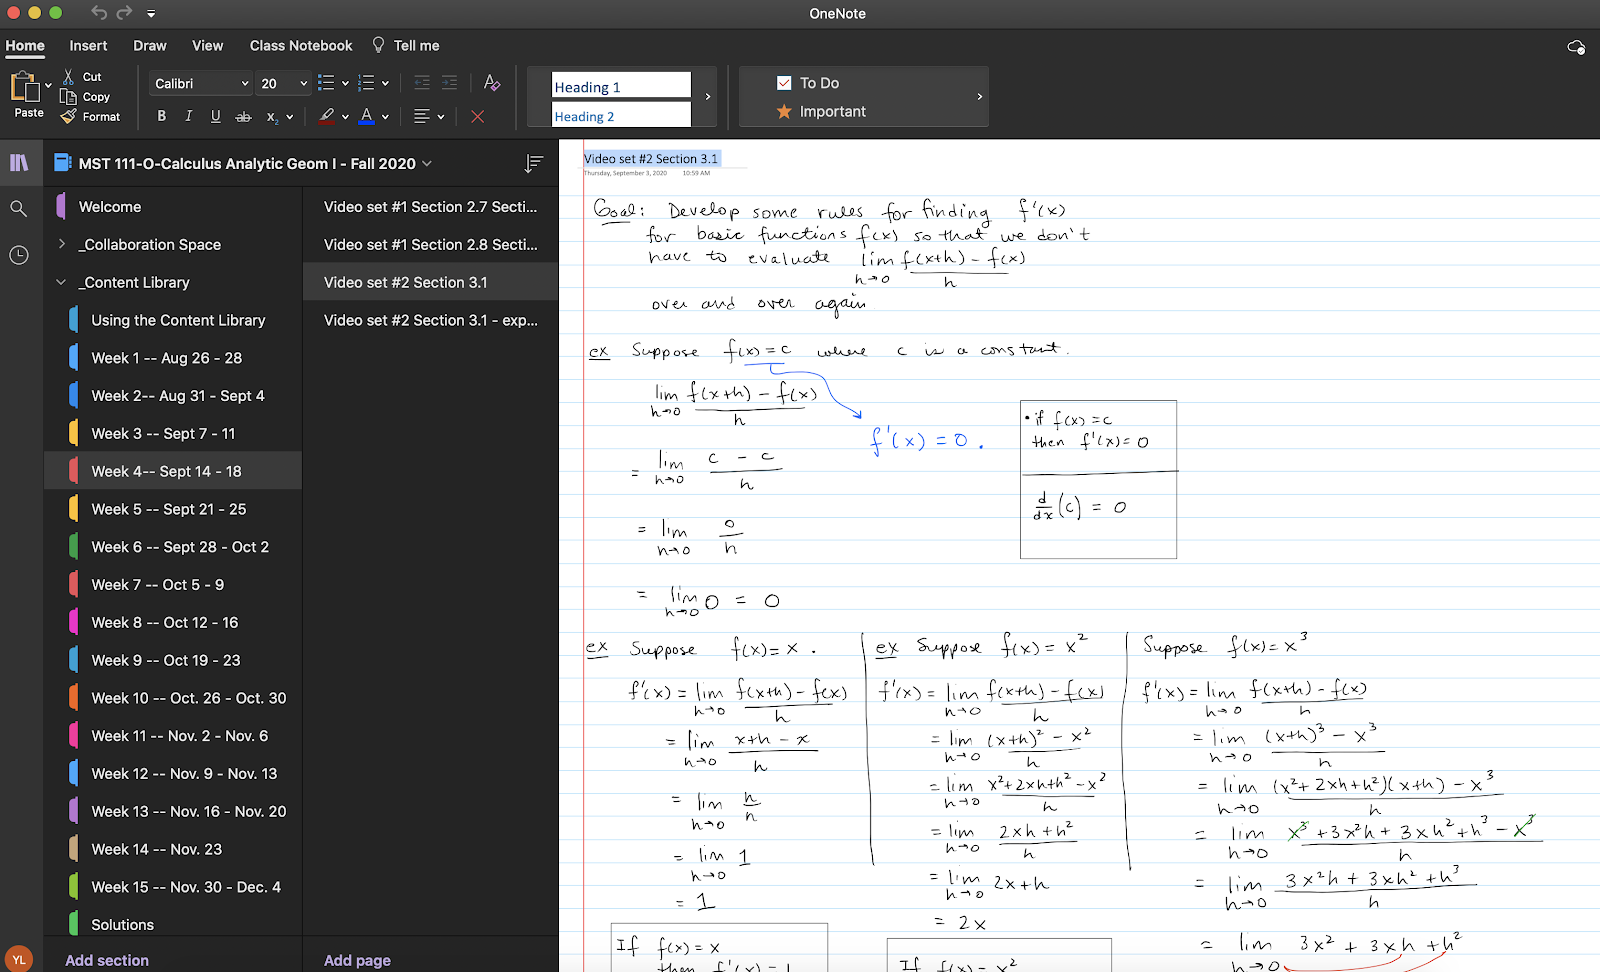 screenshot of OneNote instructor content library